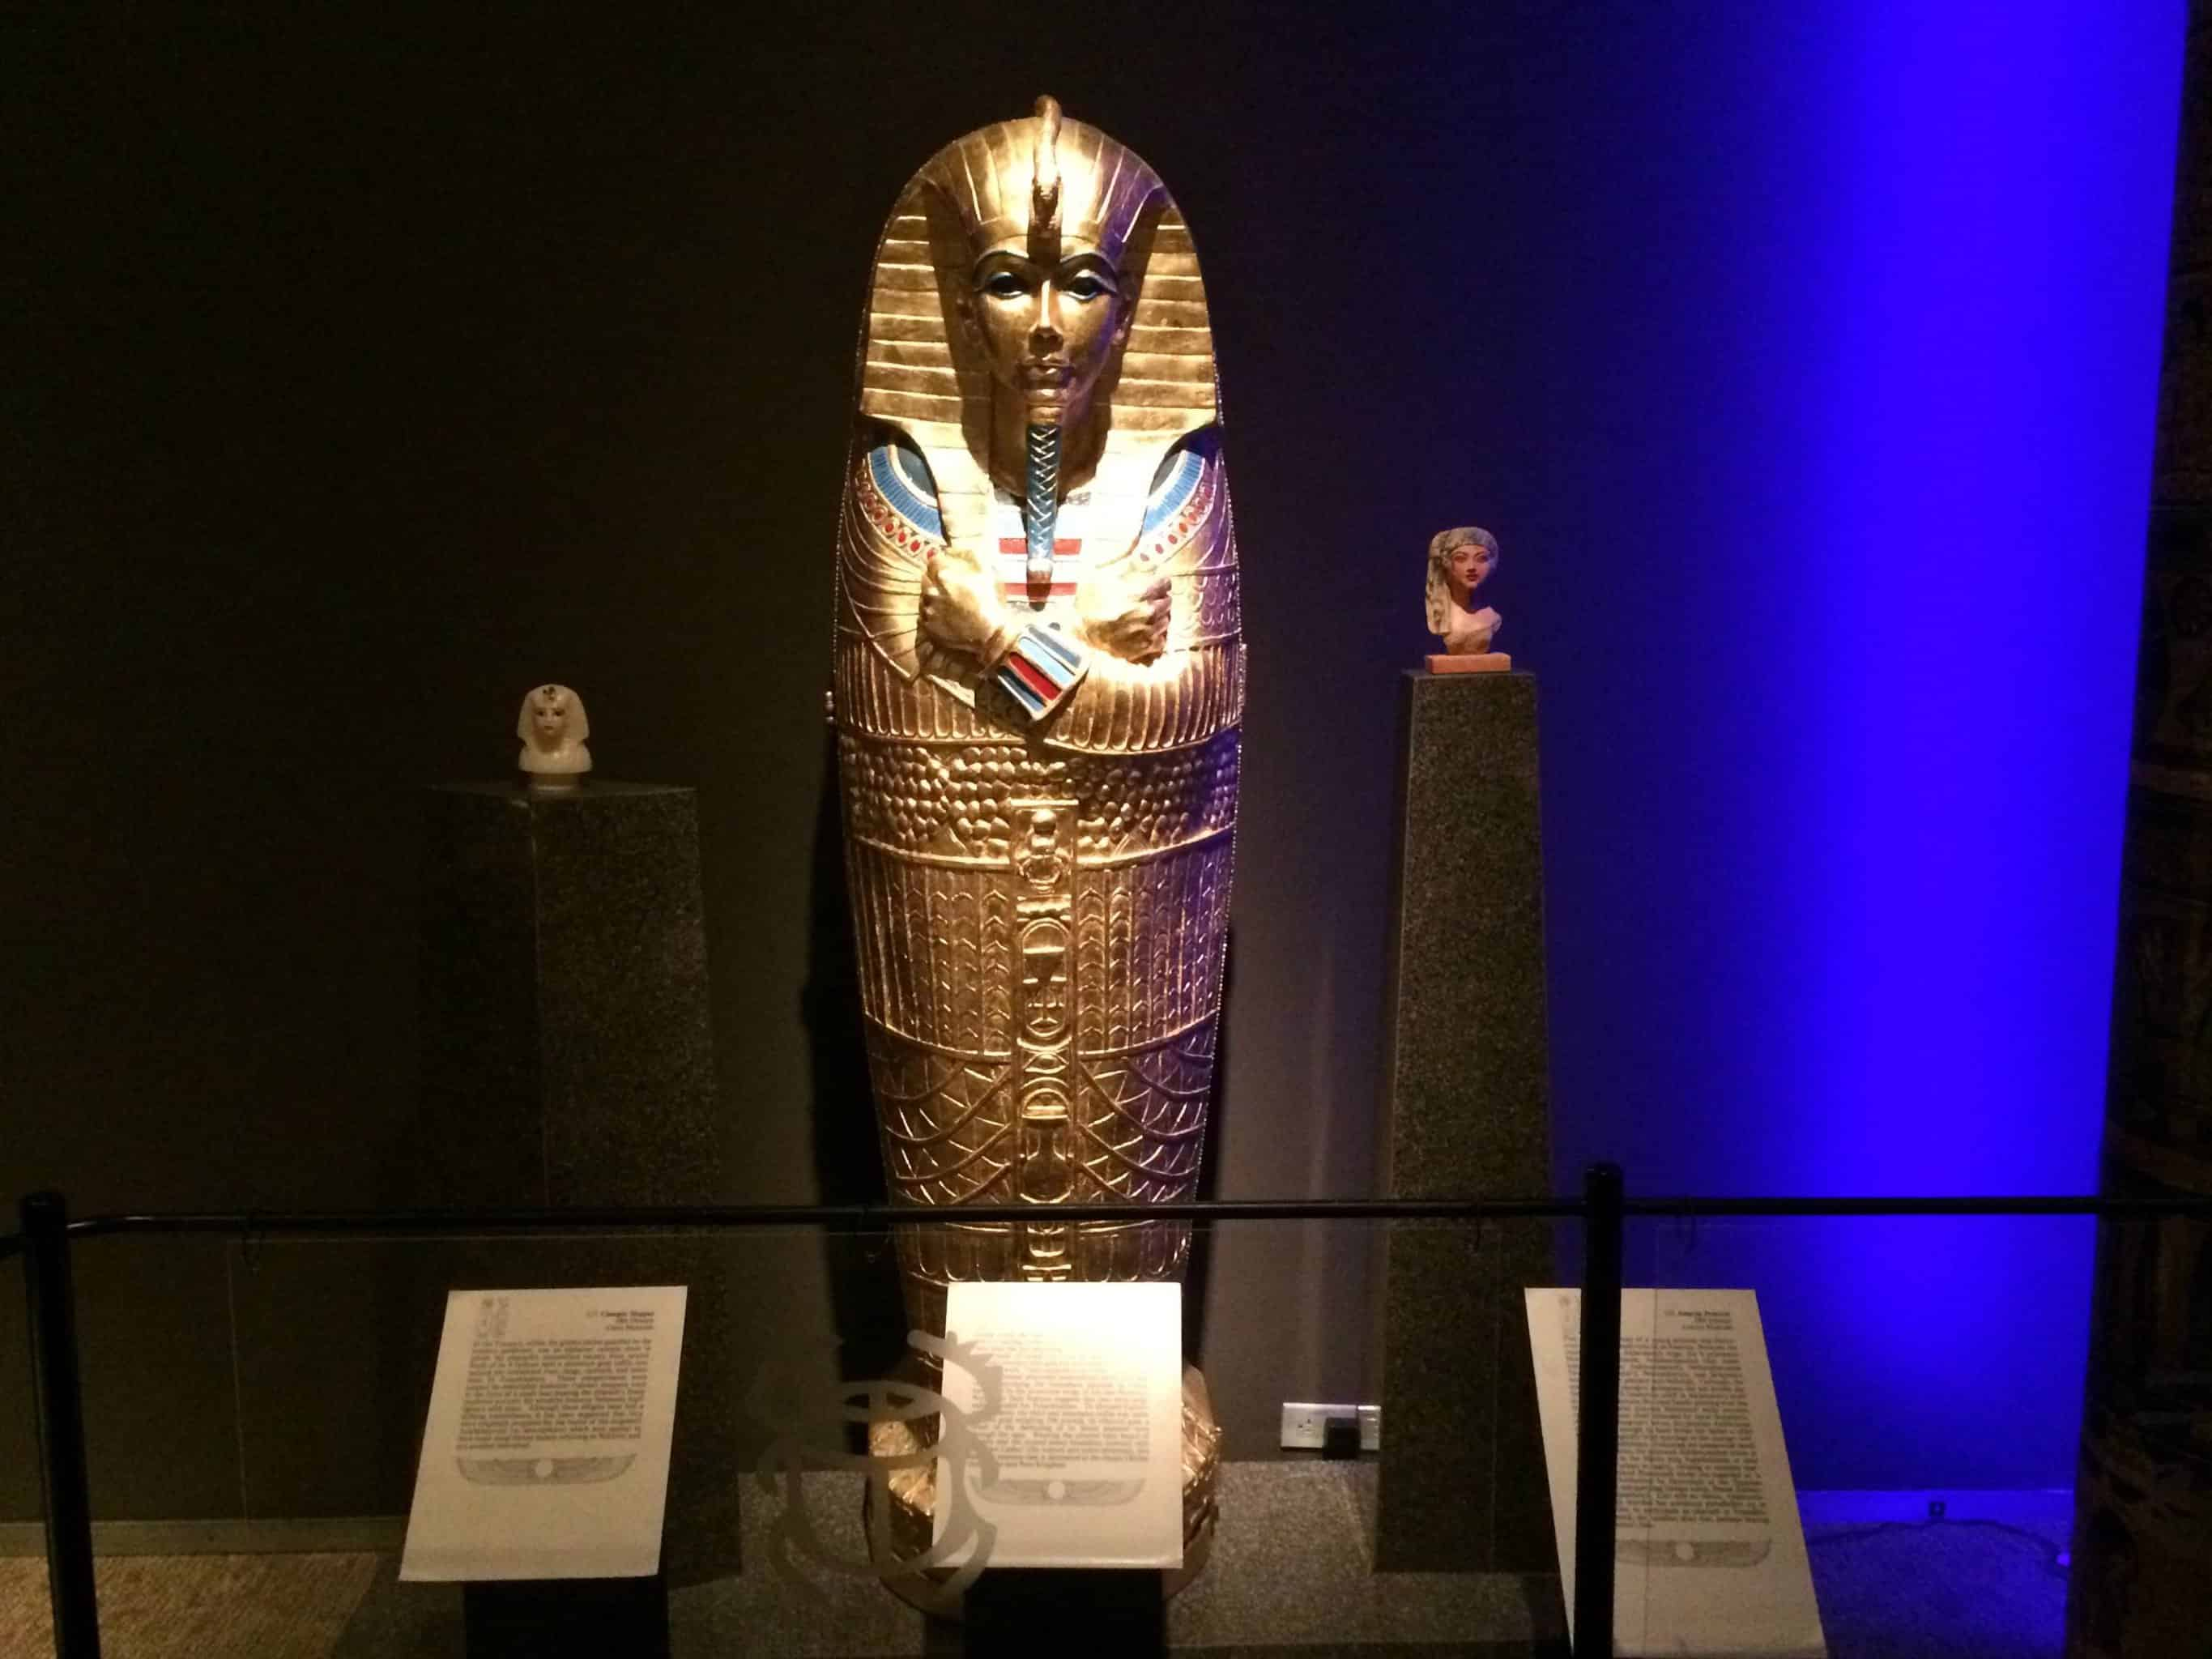 A royal sarcophagus from the King Tut exhibit at the Cranbrook Institute of Science